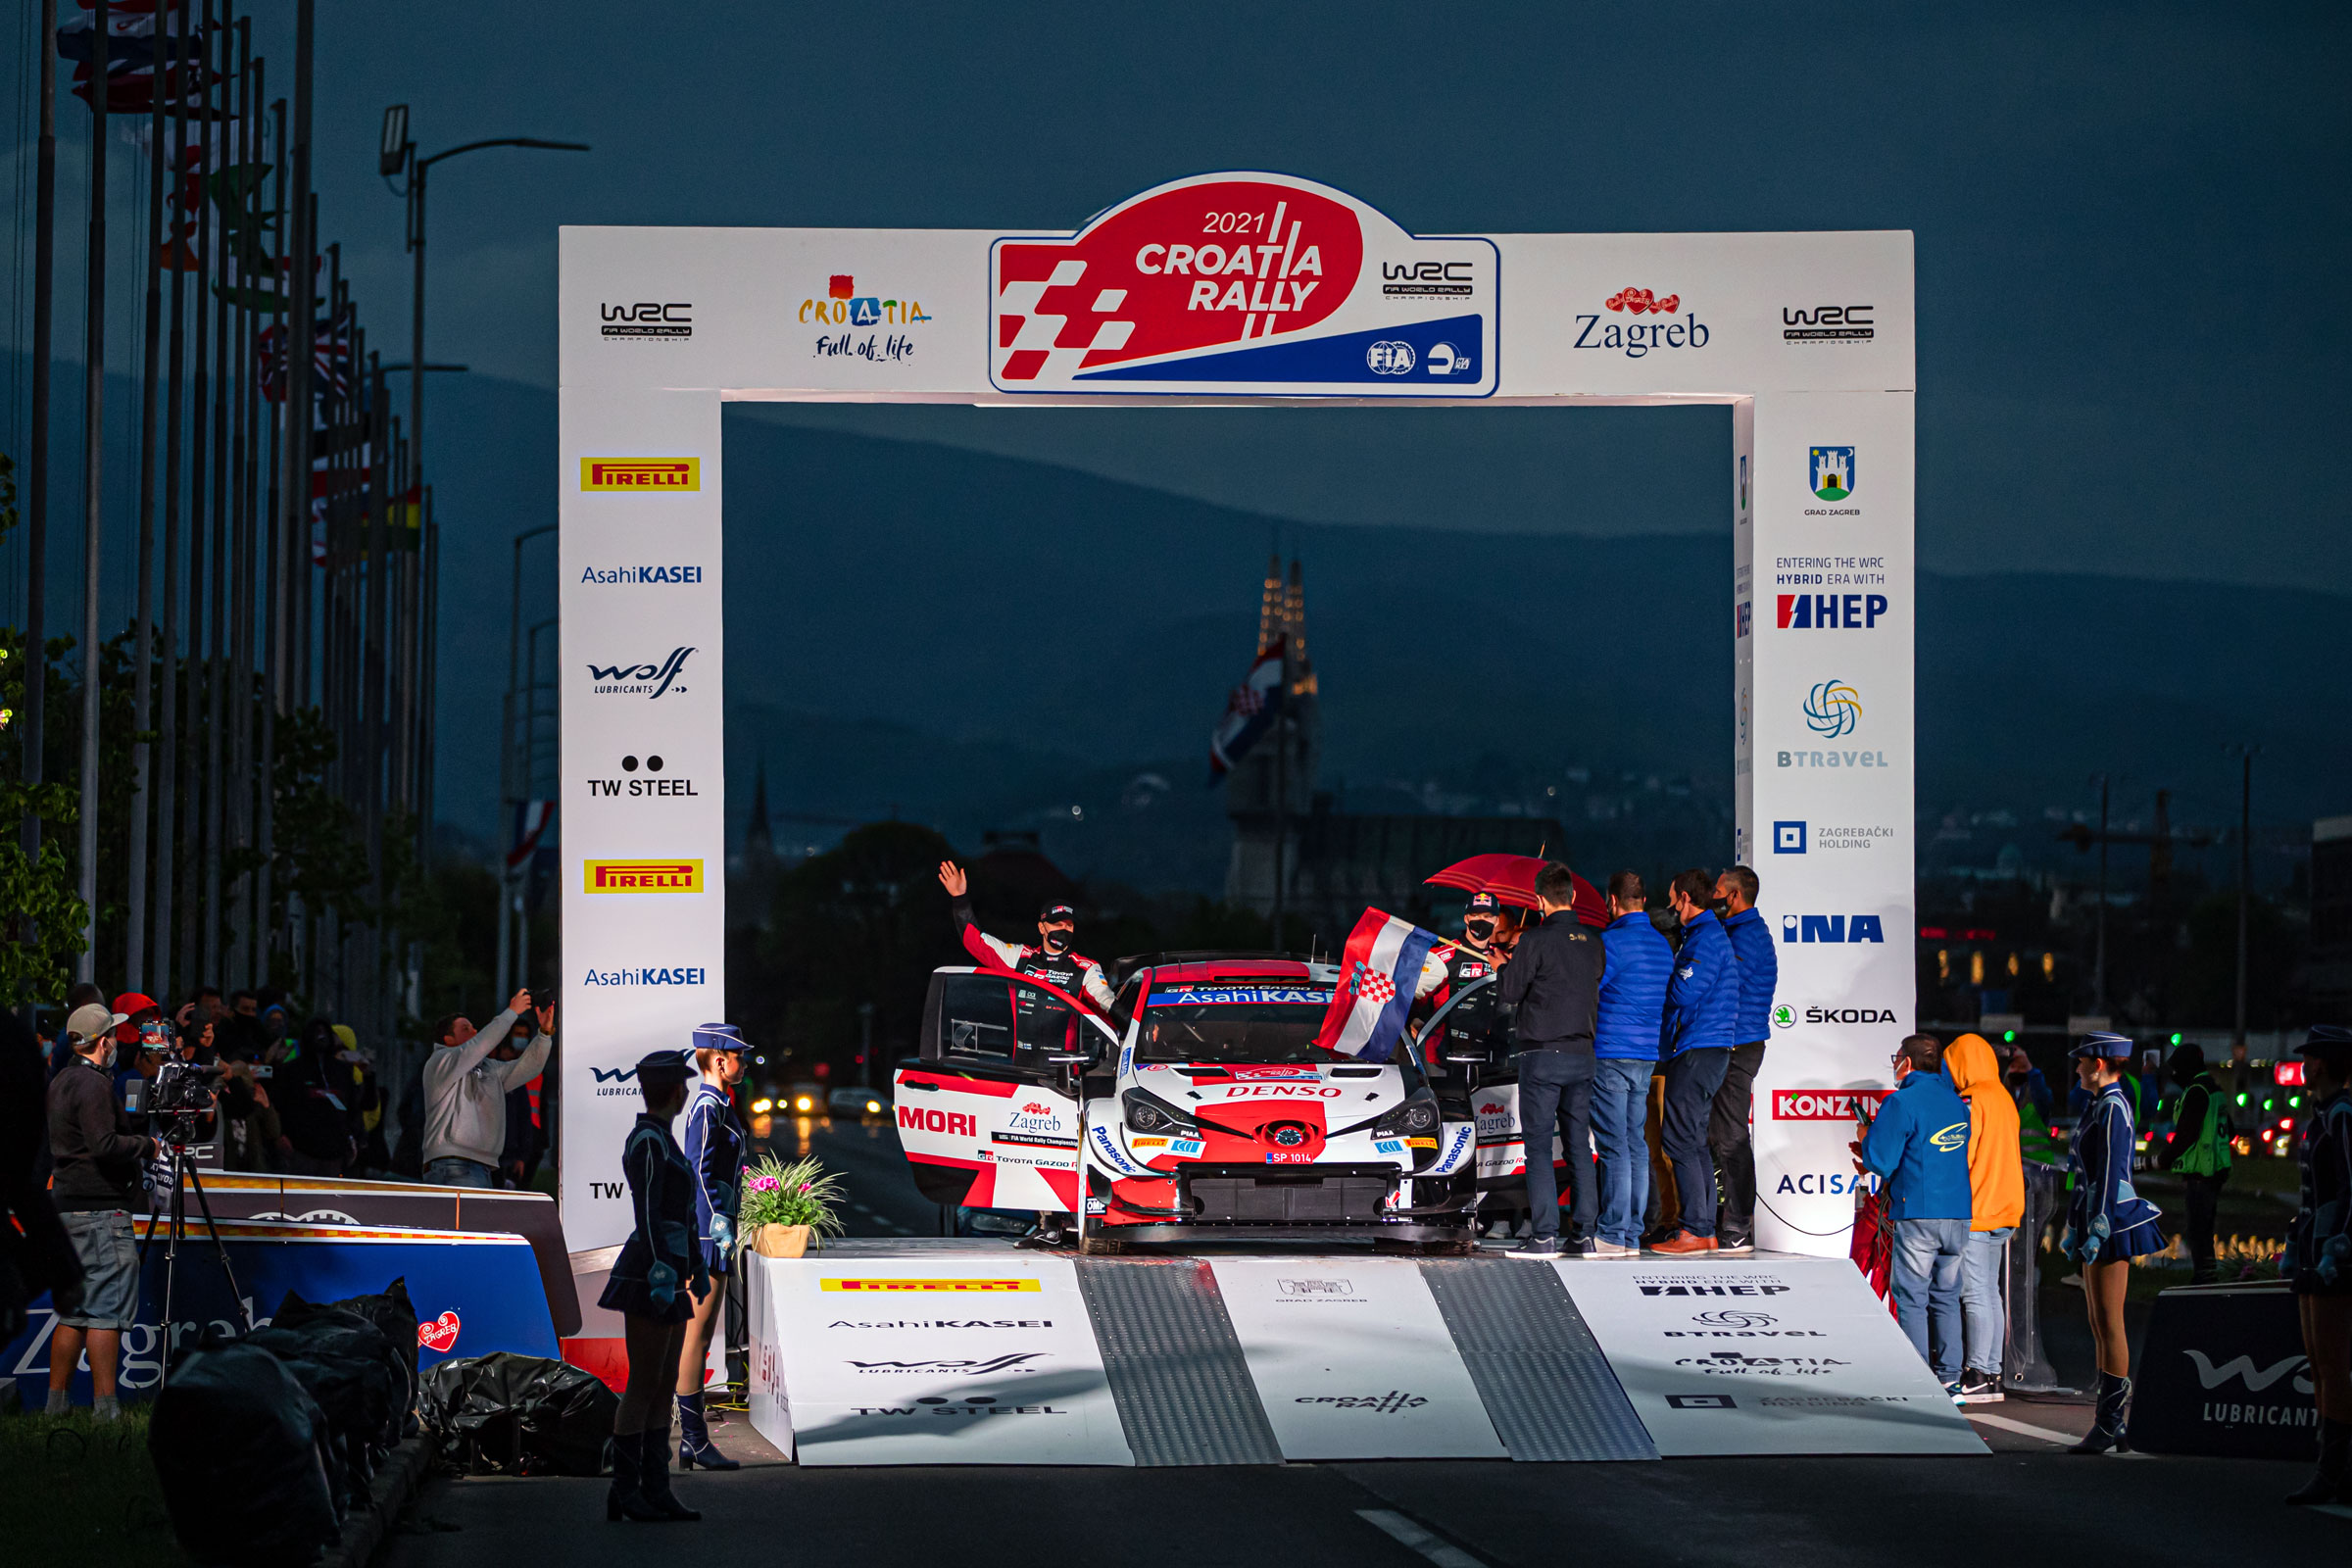 History made as Ceremonial Start marks beginning of first WRC Croatia Rally - 2